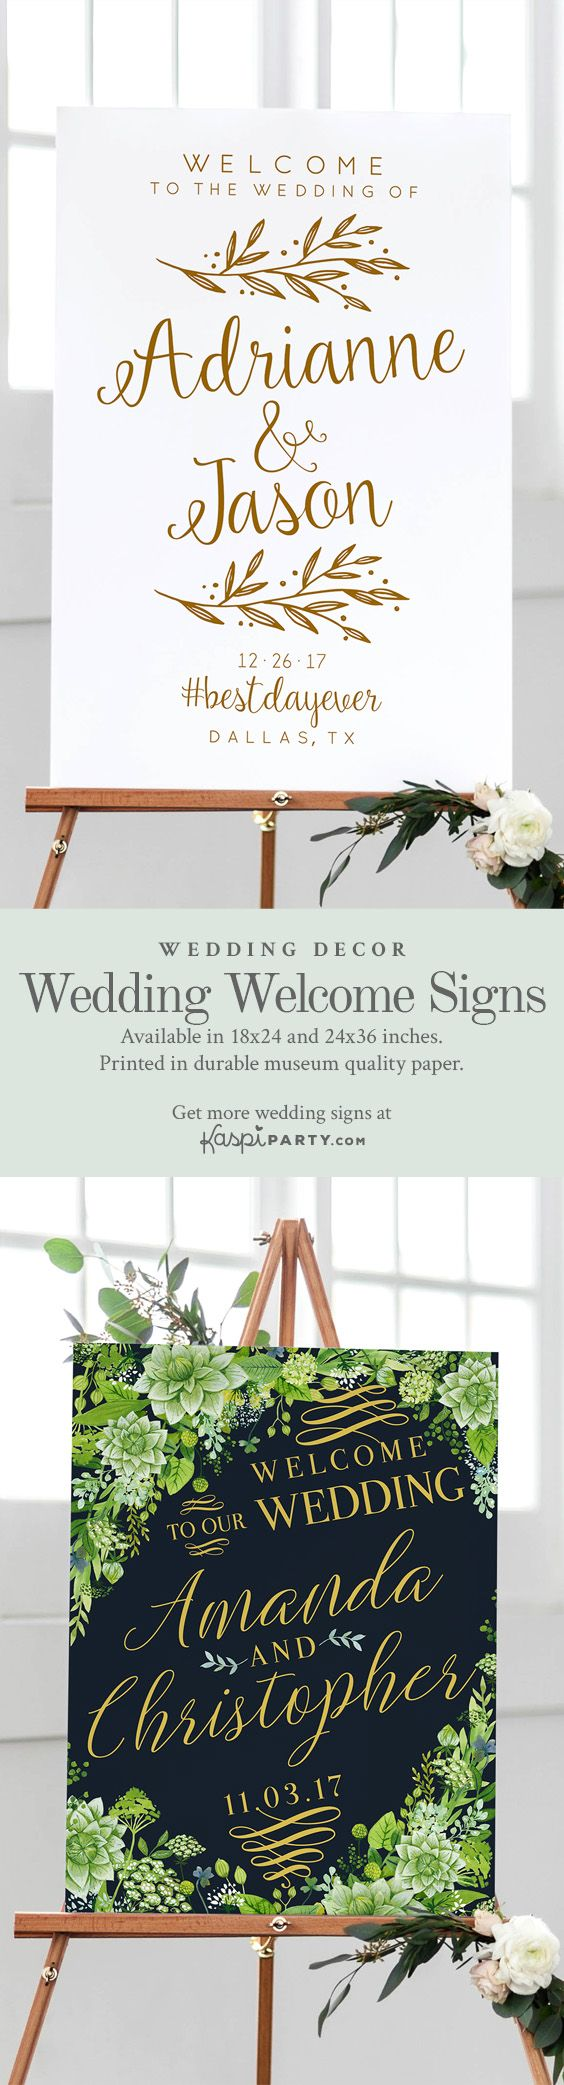 The Best Wedding Welcome Signs! - #wedding #weddings #weddingsign #weddingsigns #weddingwelcomesign #weddingwelcomesigns #weddinginspiration #weddingplanner #weddingplanning #weddingdecor #weddingdecorations